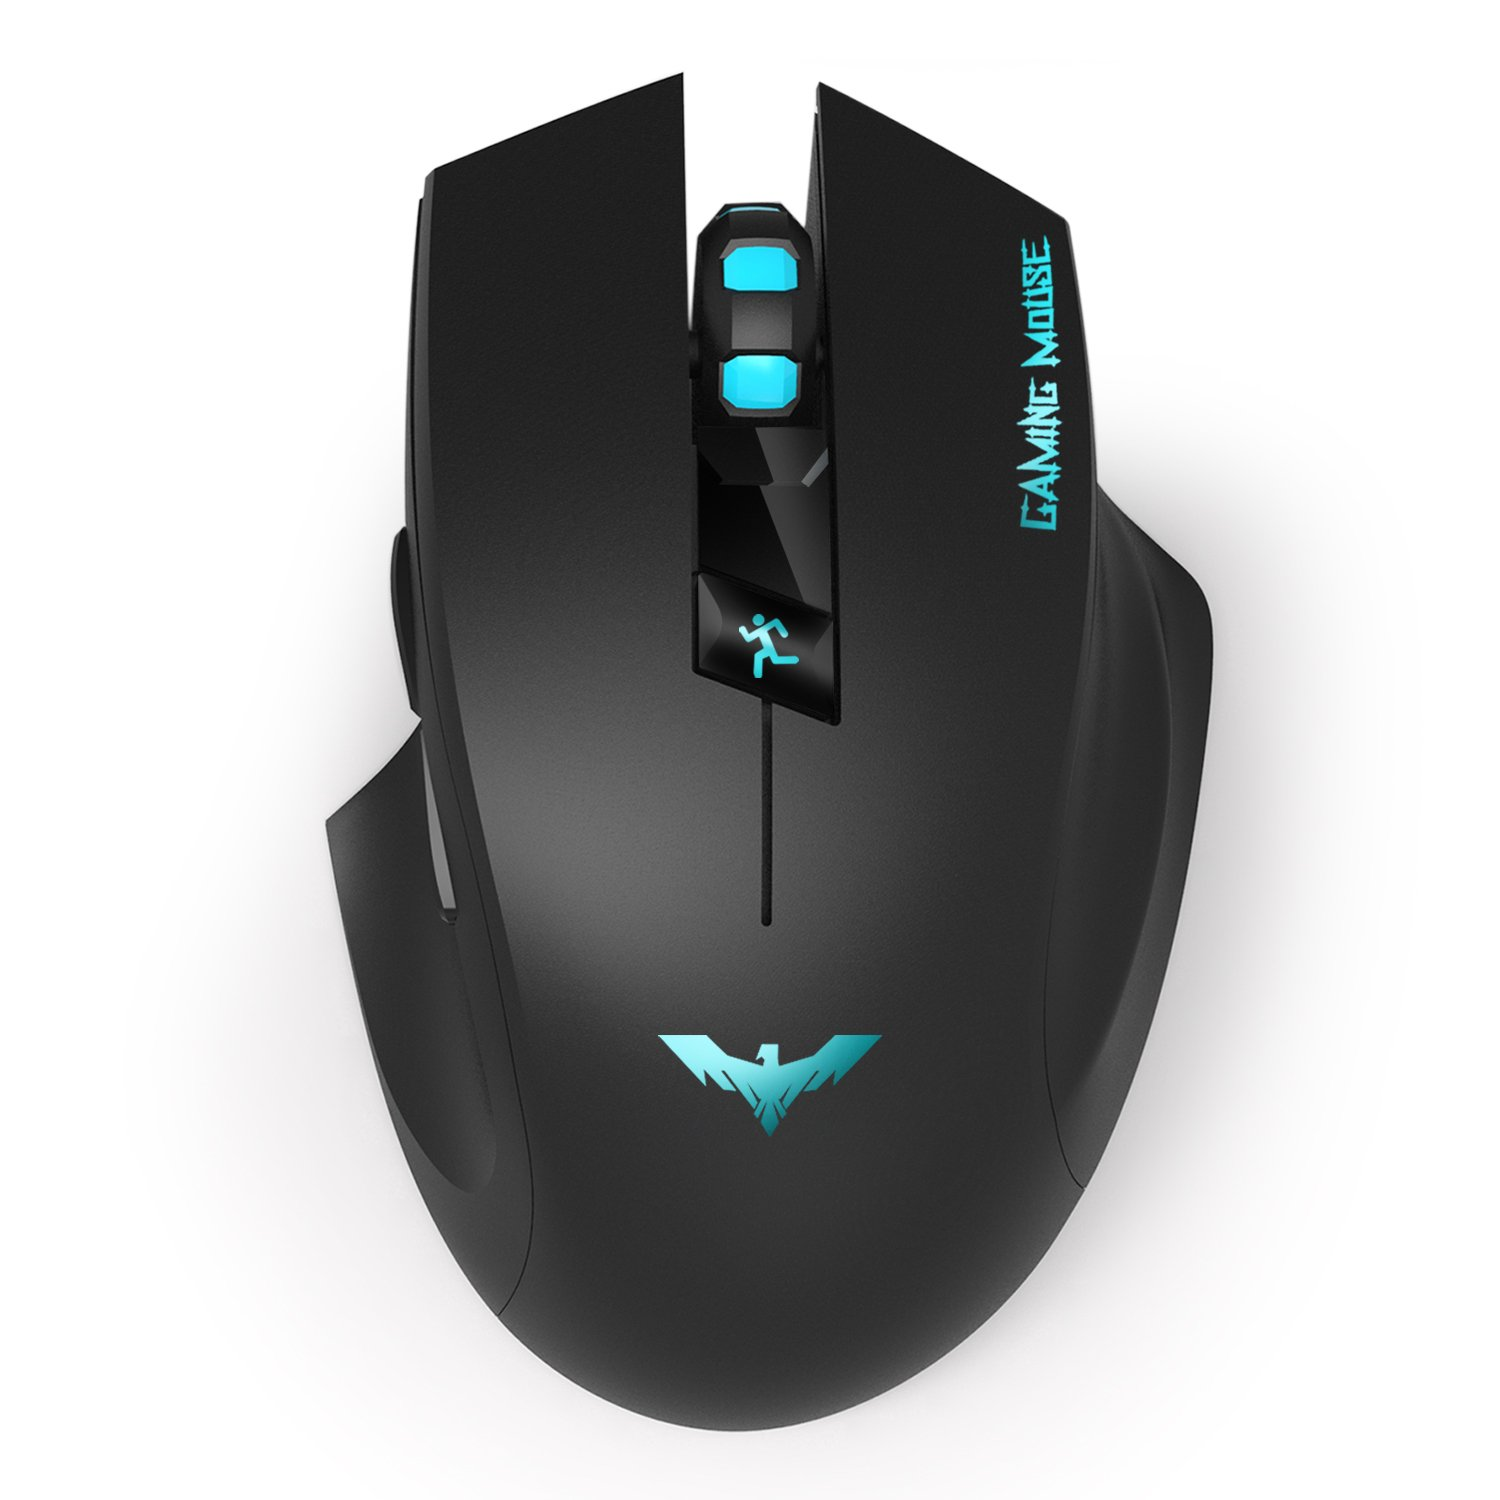 HAVIT HV-MS976GT 2.4GHz Wireless Ergonomic Gaming Mouse for PC/Computer/Laptop